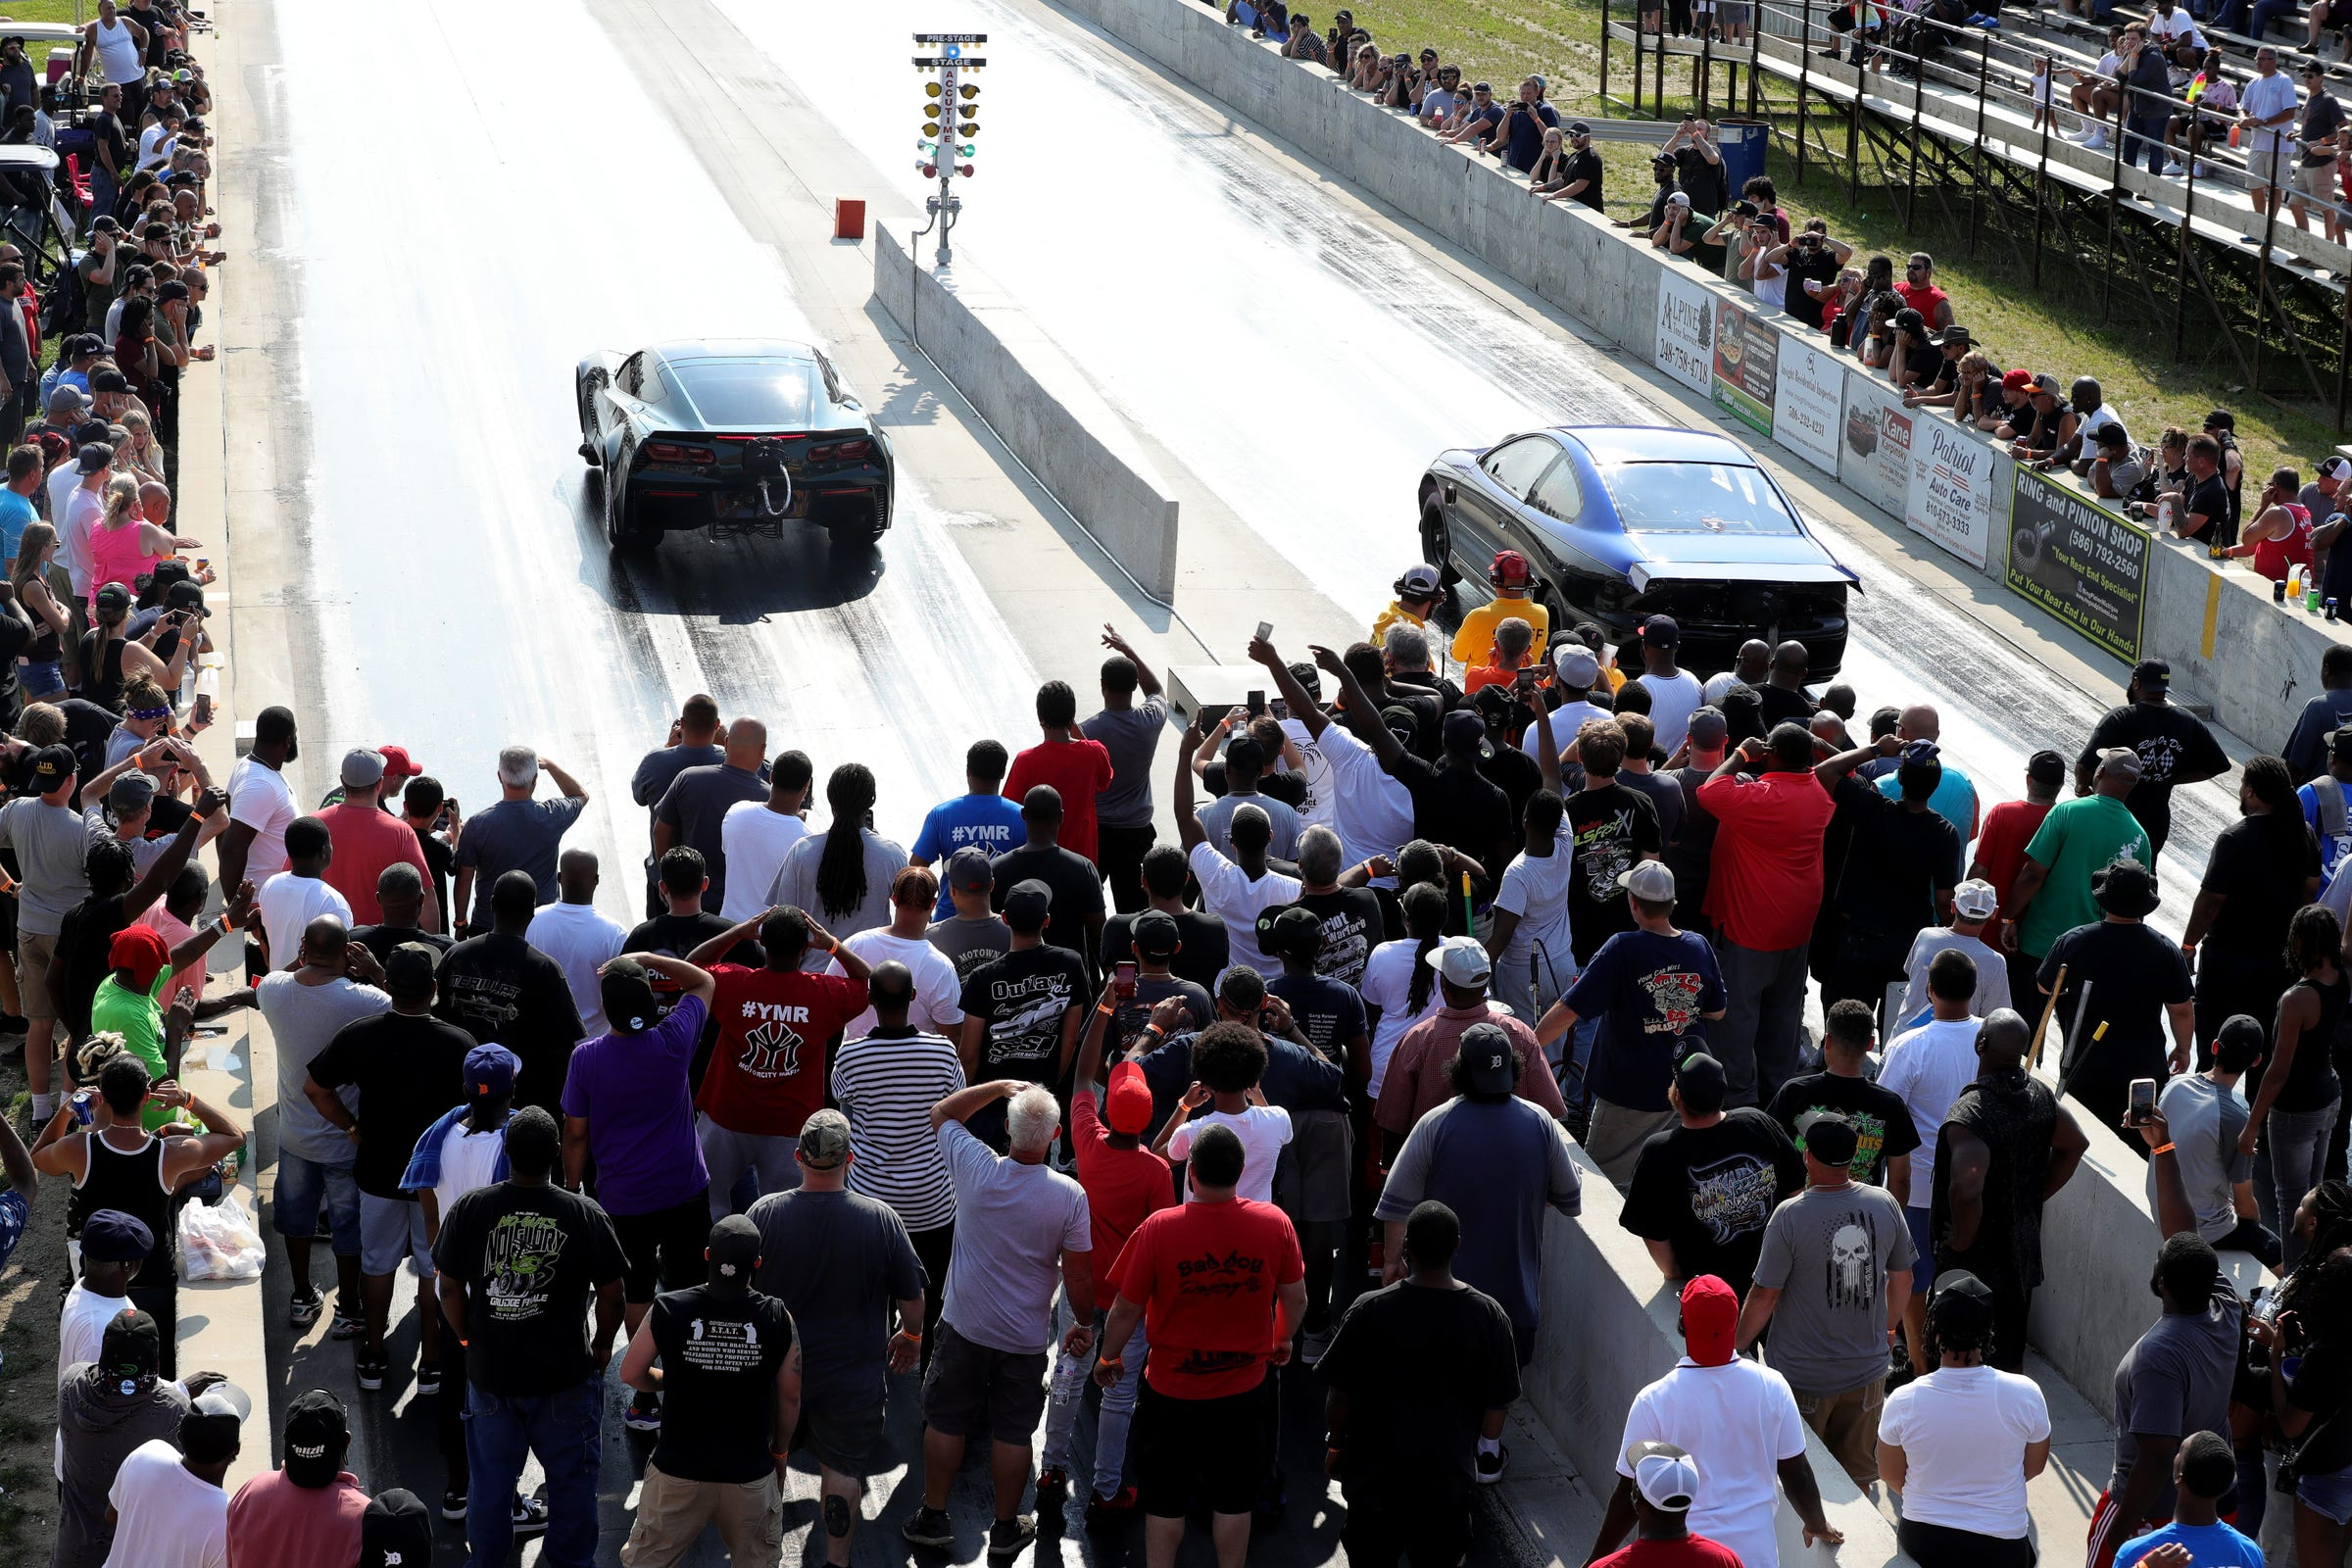 Fans cheer during a race at Lapeer International Dragway on Saturday, July 17, 2021. Hundreds of dollars are bet throughout the course of the day on the various races.